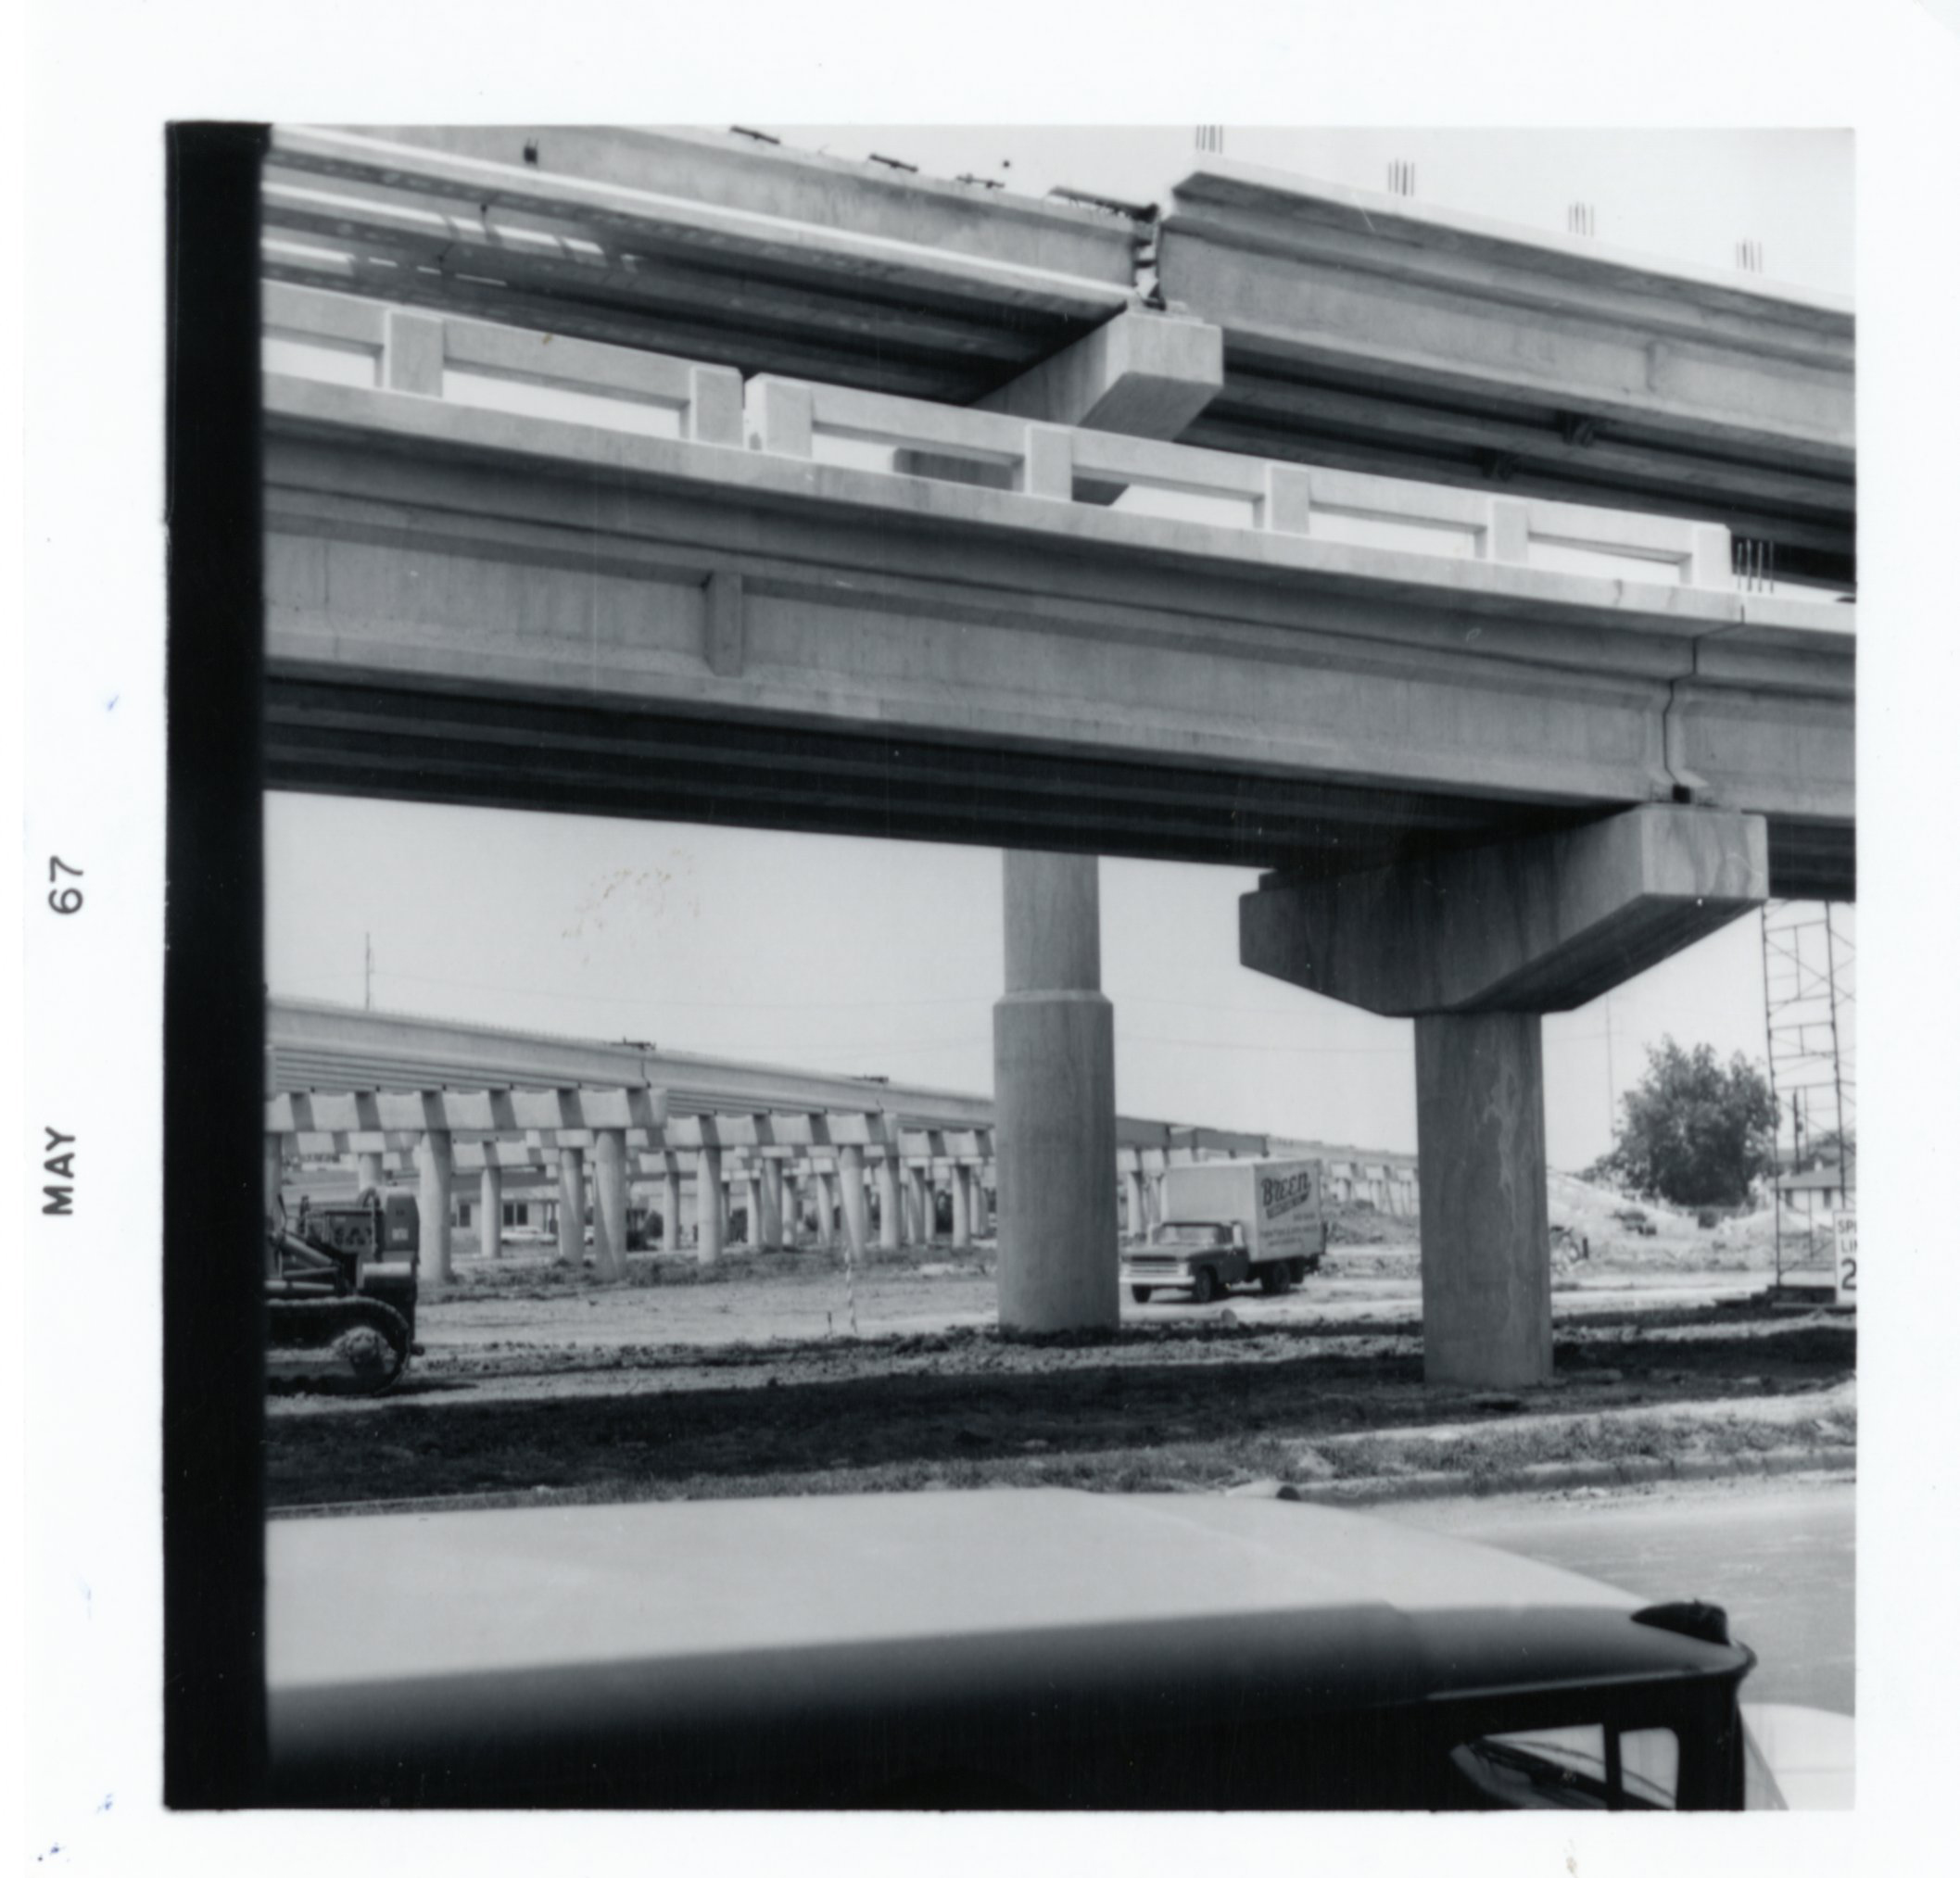 Historic photos show the construction of I-10 above Claiborne Avenue in 1967.